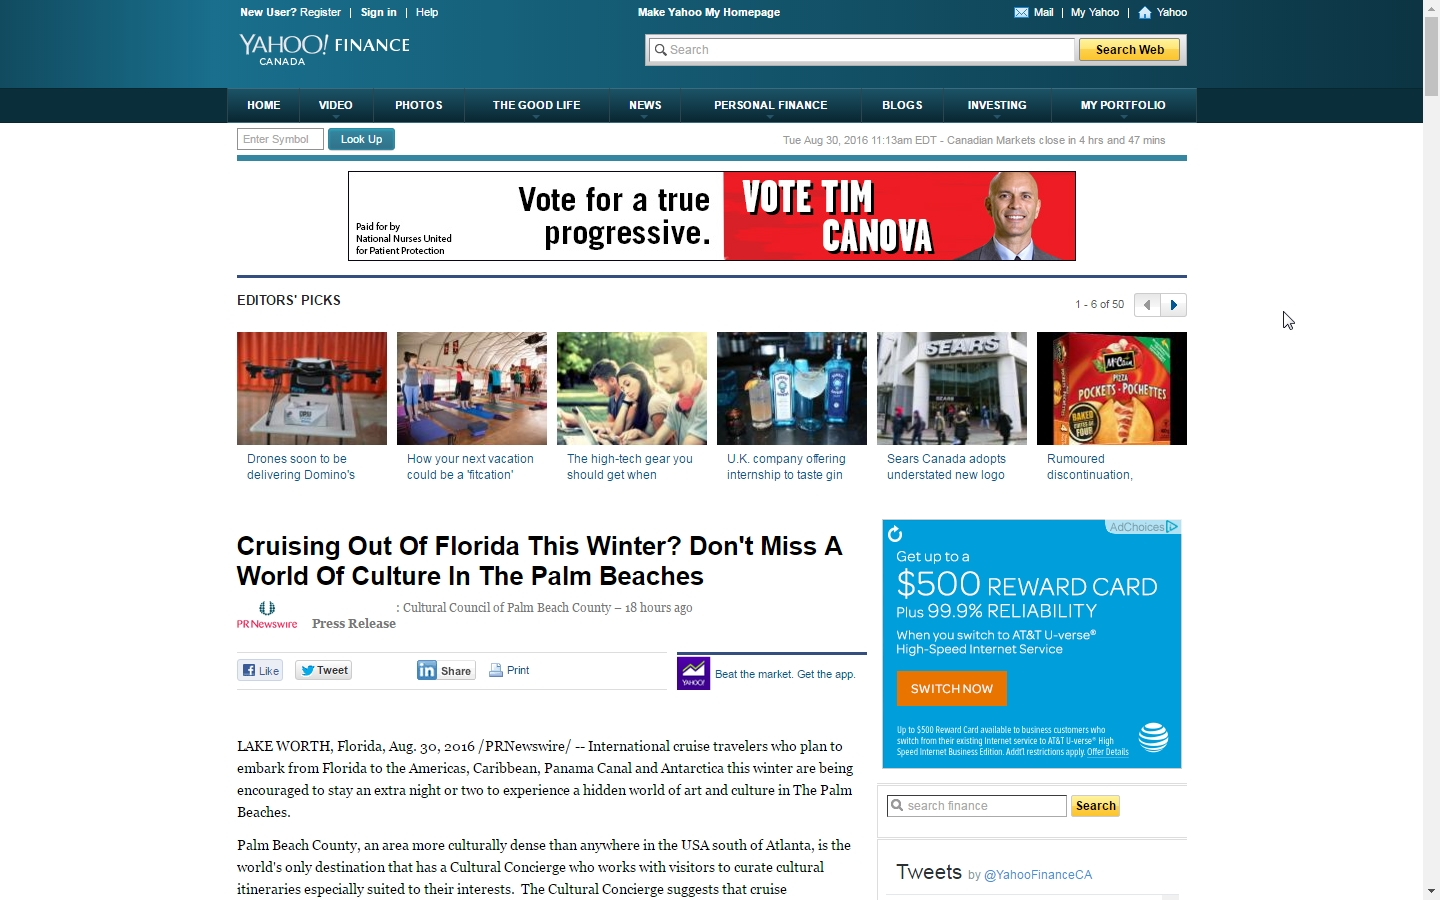 Cruising Out Of Florida This Winter - Yahoo Finance Canada